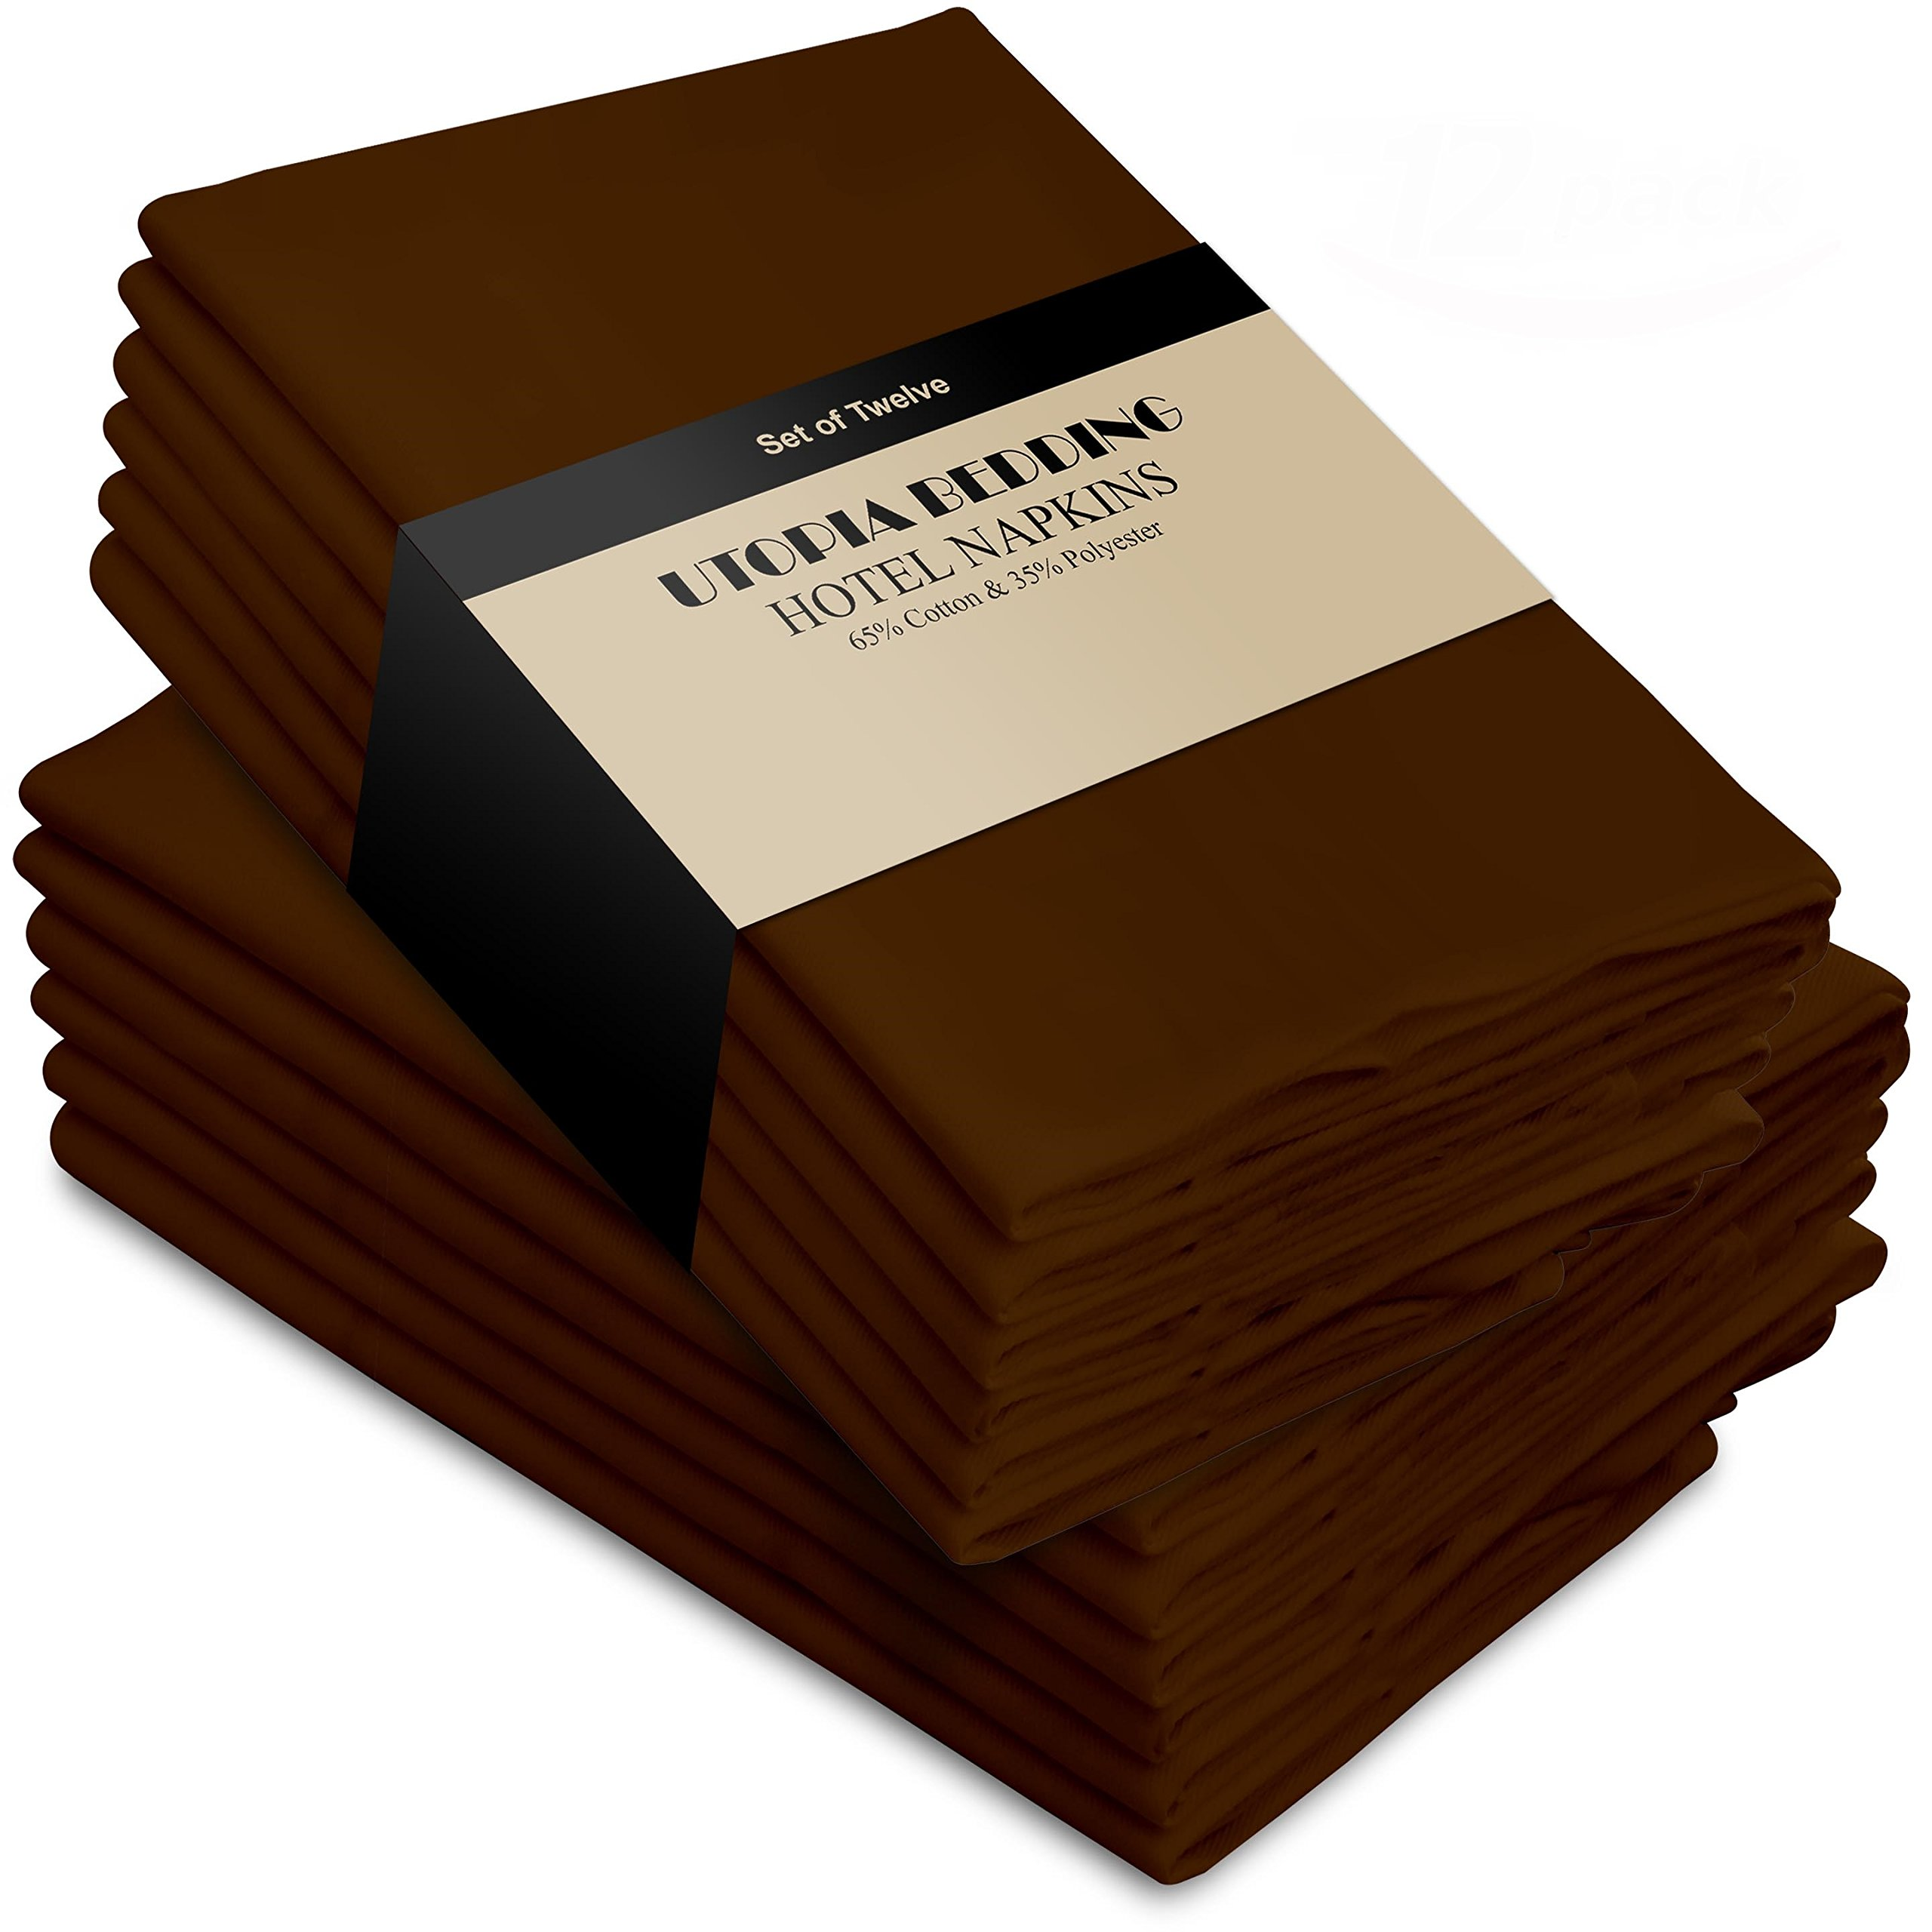 Utopia Bedding Cotton Dinner Napkins - Cocoa Brown - 12 Pack (18 inches x 18 inches) - Soft Comfortable - Durable Hotel Quality - Ideal Events Regular Home Use